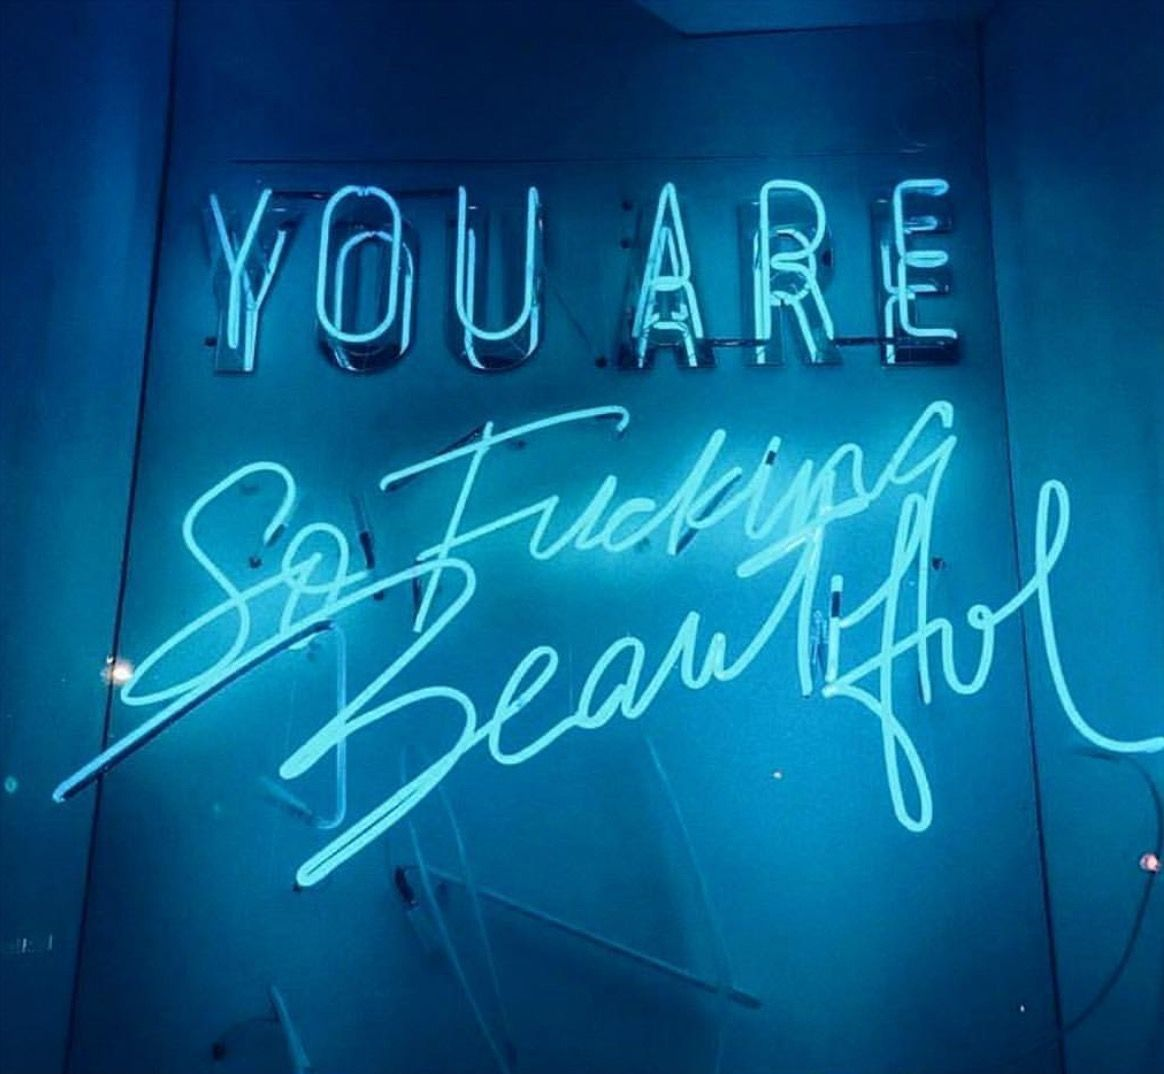 Pin By Caroline Barker On Wallpaper Neon Signs Neon Quotes Light Quotes